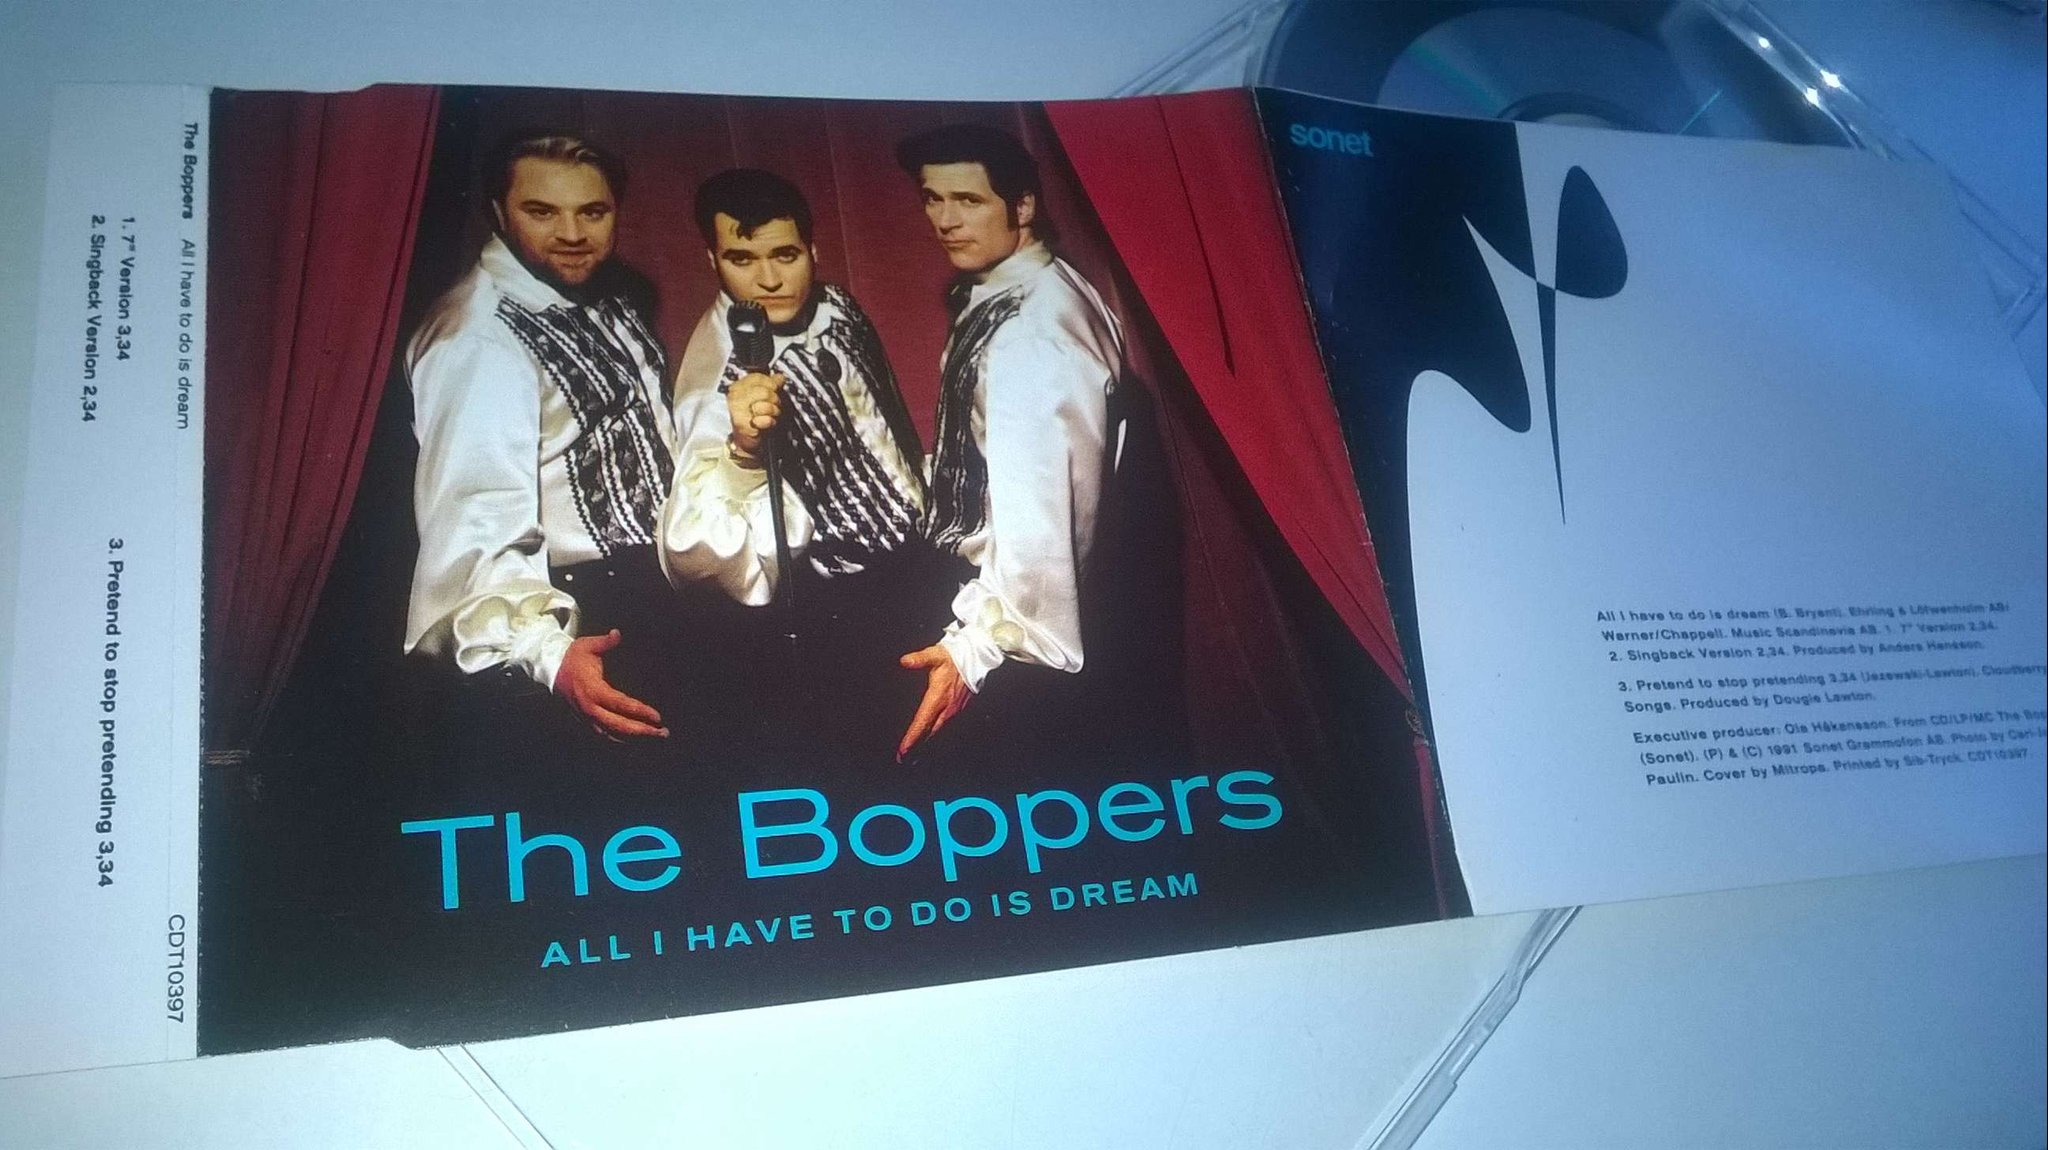 The Boppers - All I have to do is dream, CD, Single, rare!